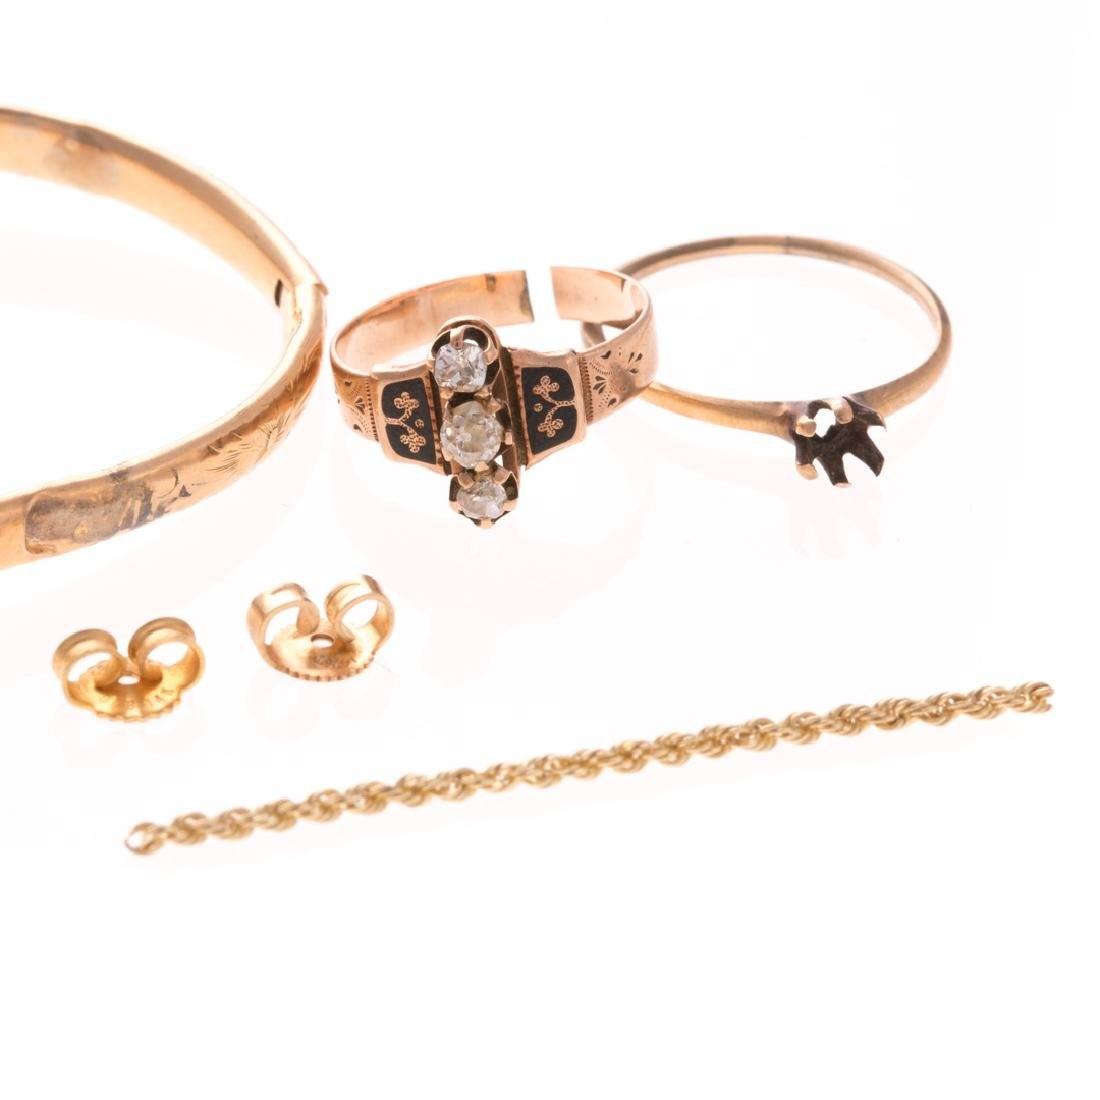 A Collection of Lady's Jewelry in Gold - 2